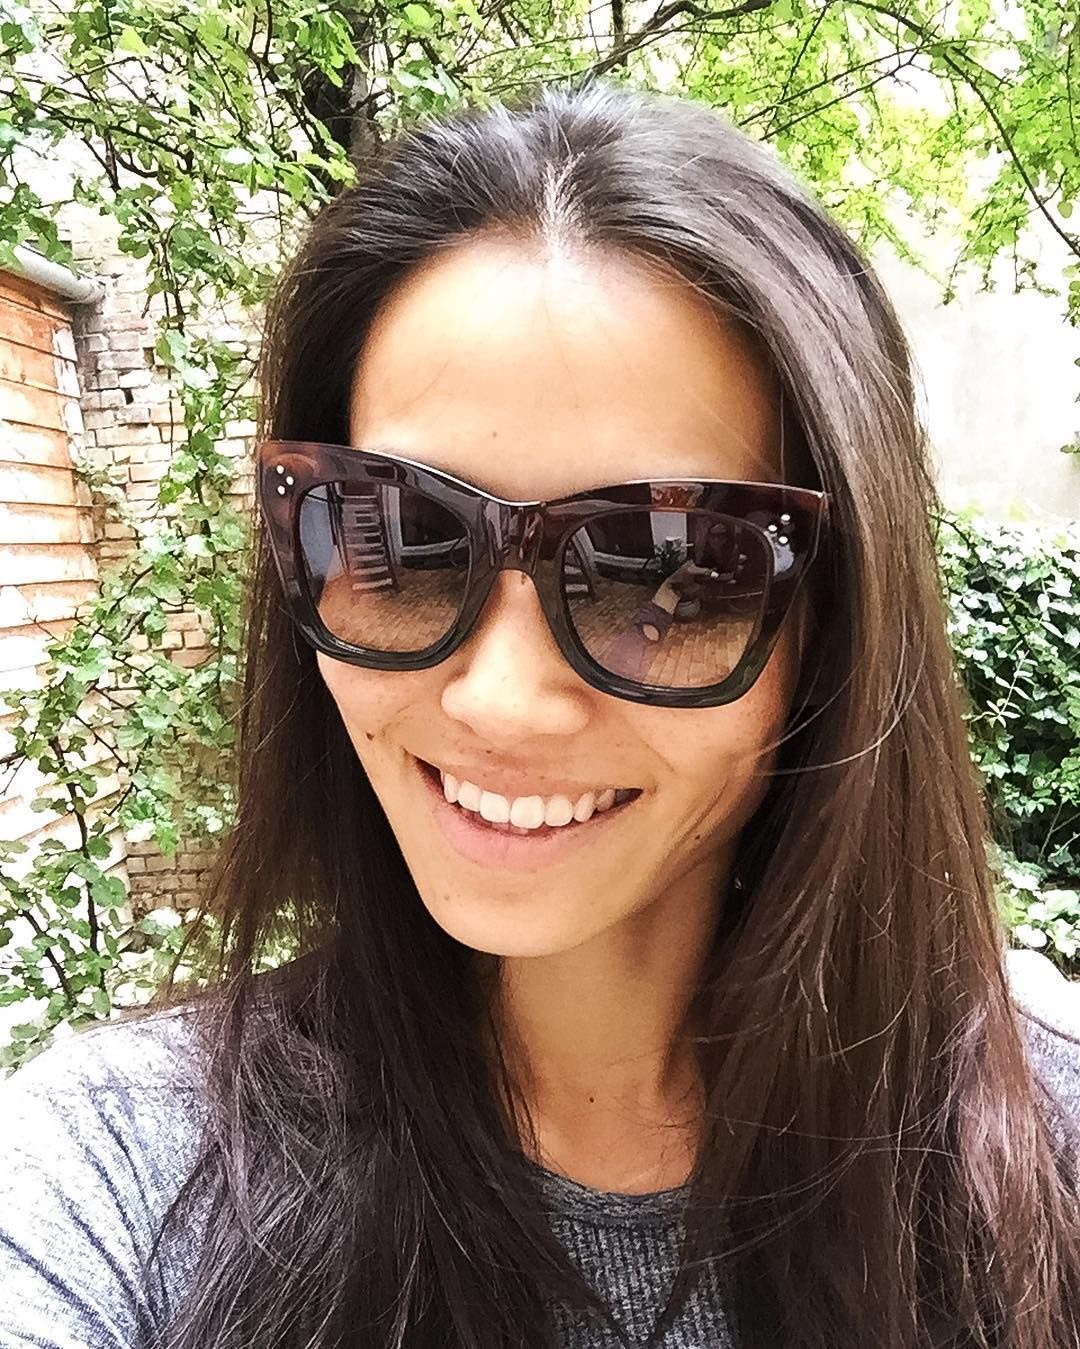 f8107e82547b Celine Catherine. Find this Pin and more on Celine sunglasses ...